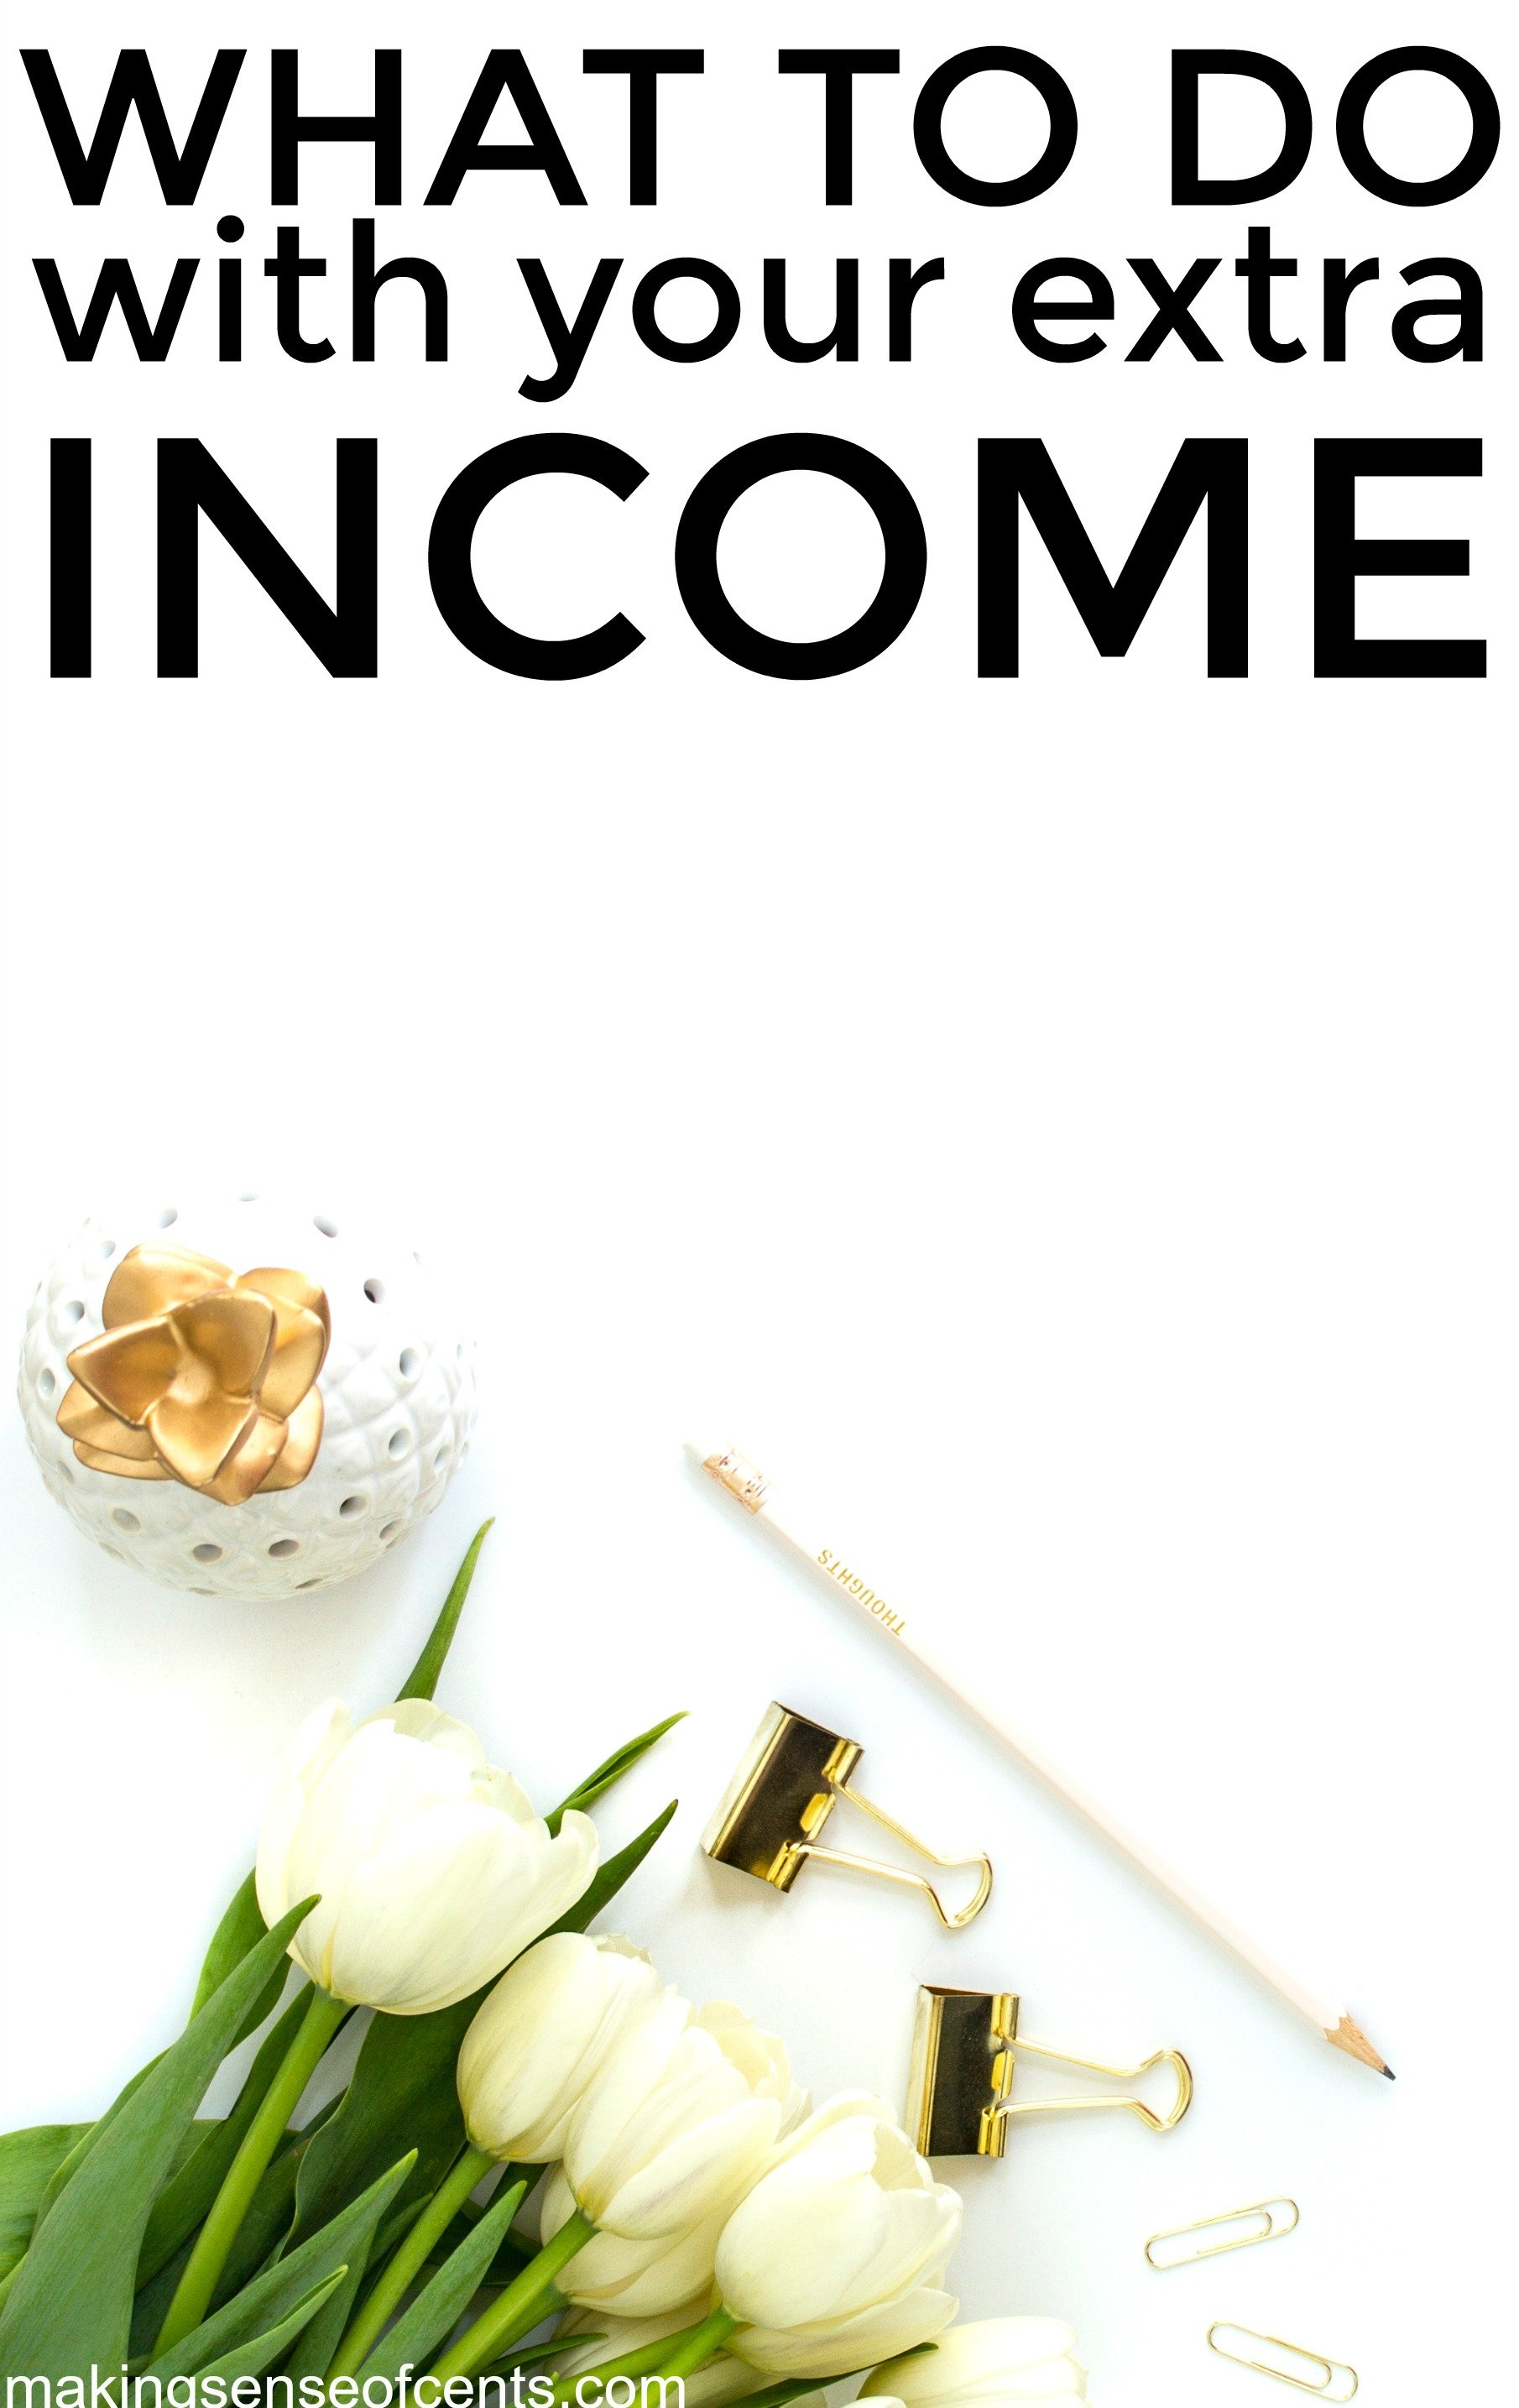 Find out what to do with your extra income instead of spending it all. This is great list!